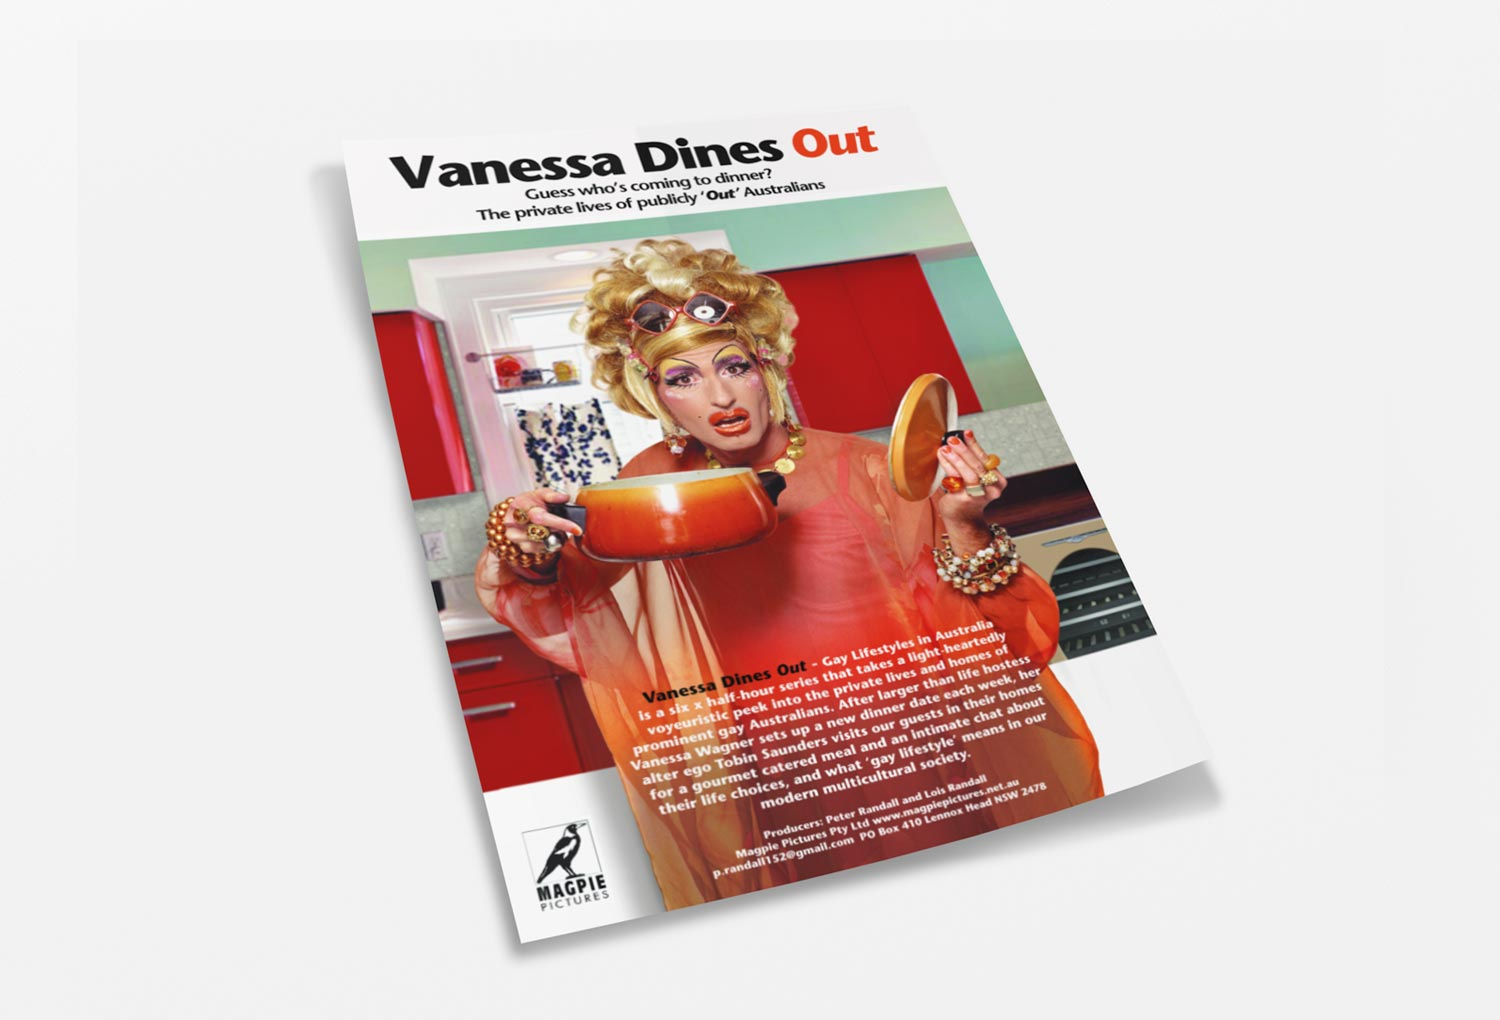 Vanessa Dines Out One-Sheet Film Pitch Document By Mango Tree Media